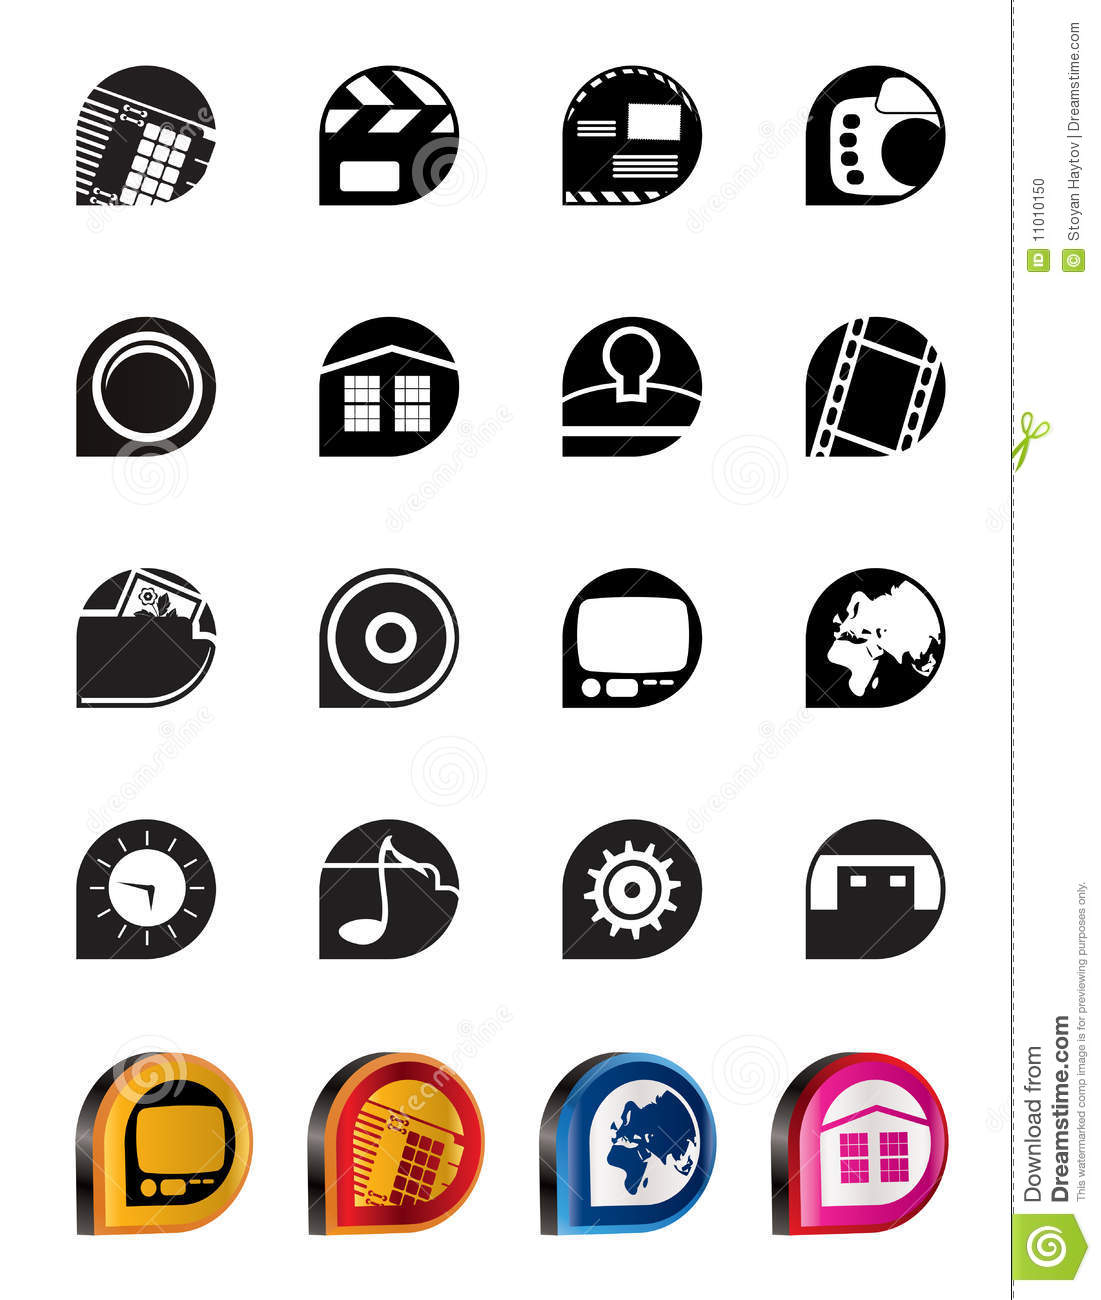 Internet, Computer And Mobile Phone Icons Stock Photo - Image ...